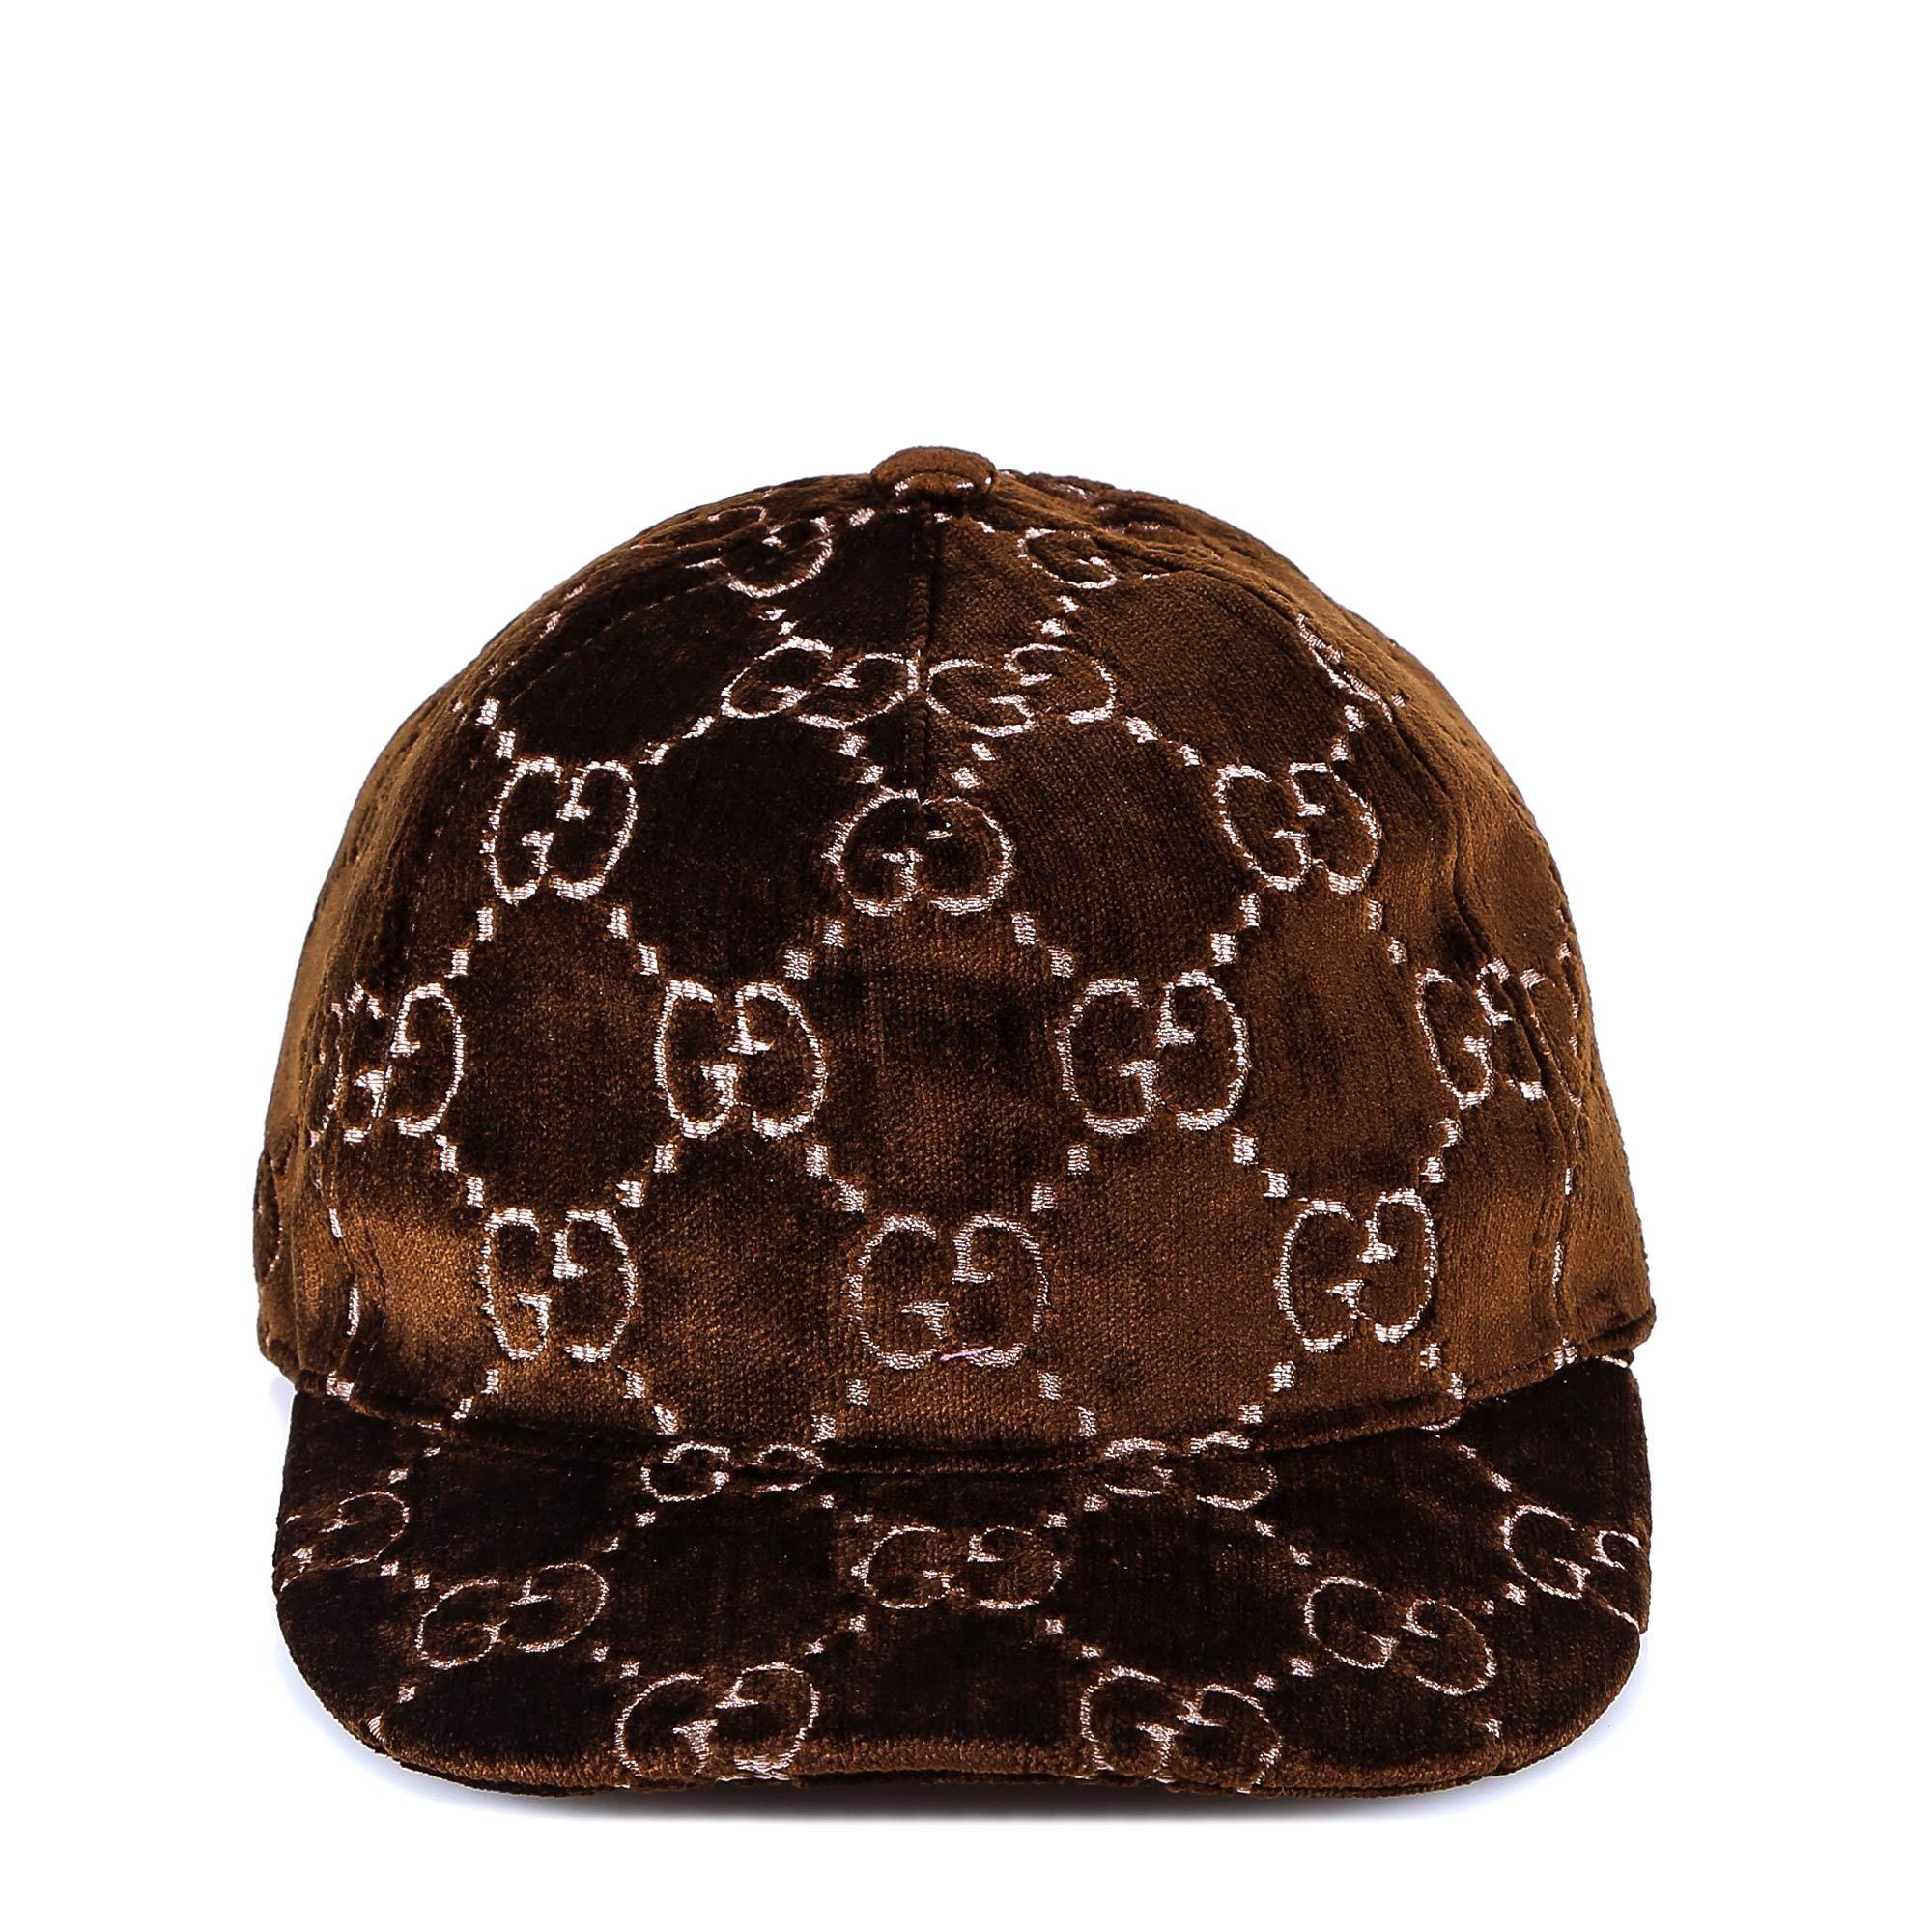 0213755cc4c0e Lyst - Gucci Gg Embroidered Velvet Cap in Brown - Save 41%